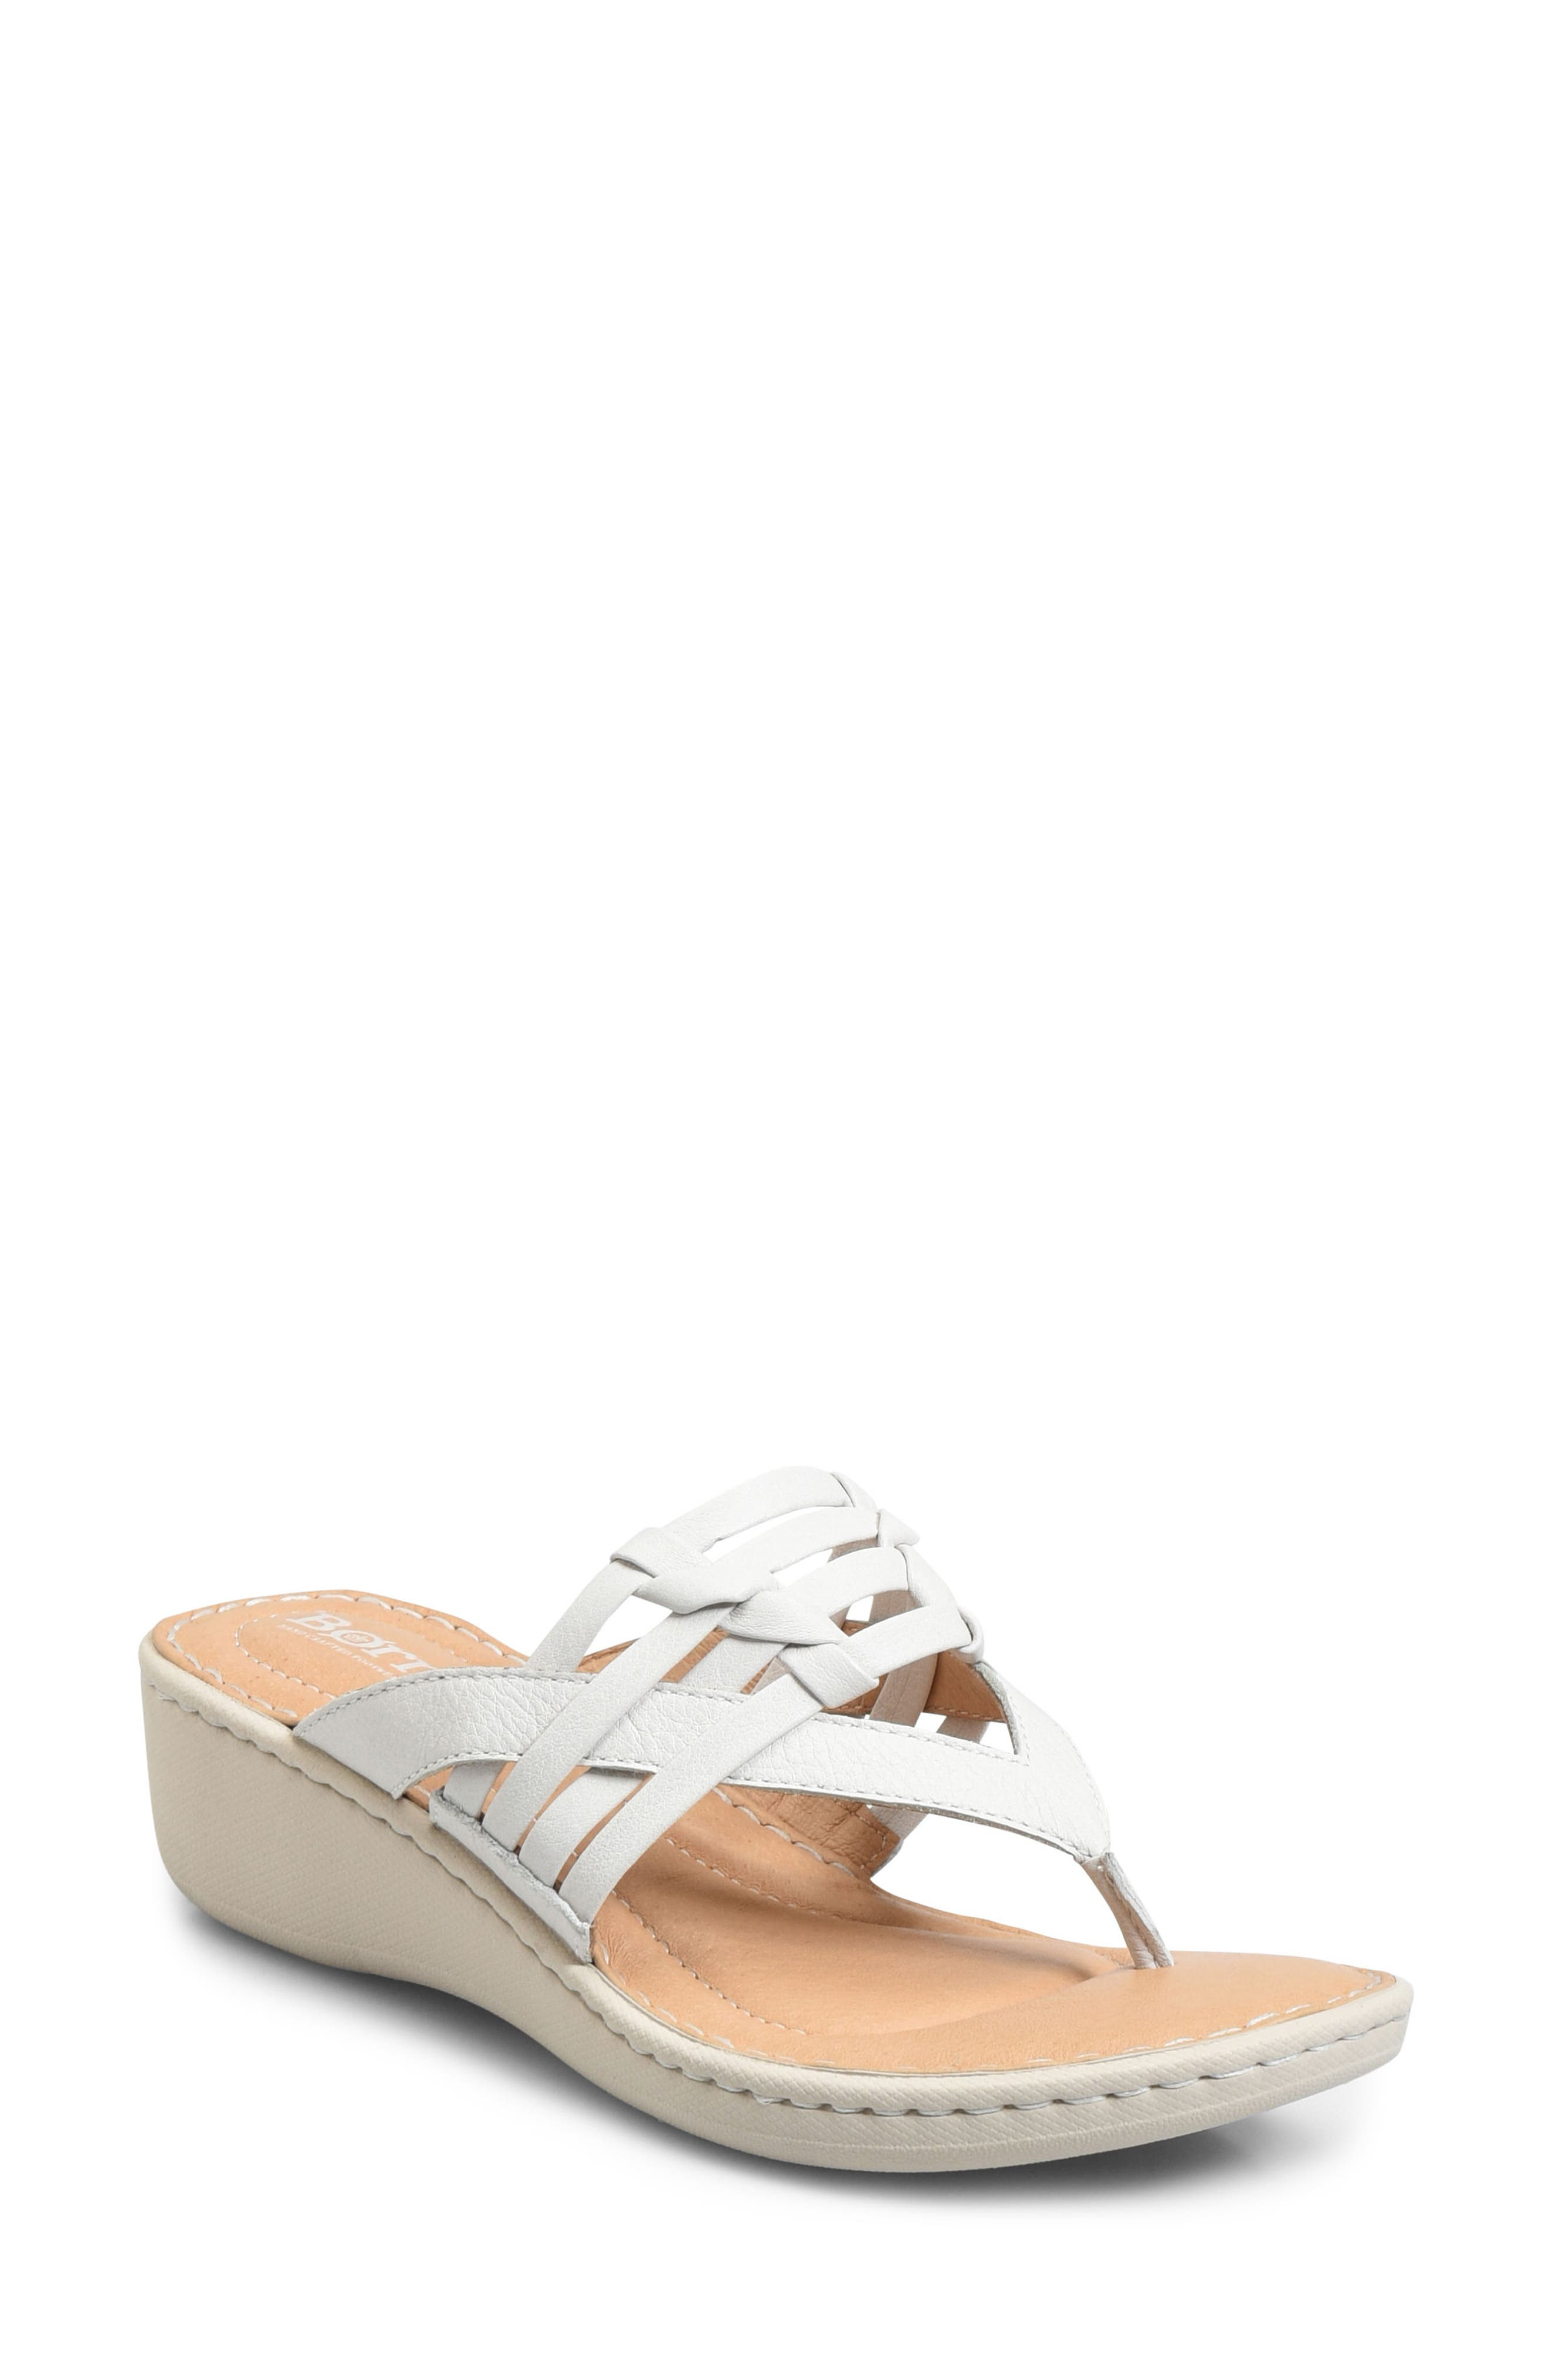 Tansey Wedge Sandal,                         Main,                         color, 100